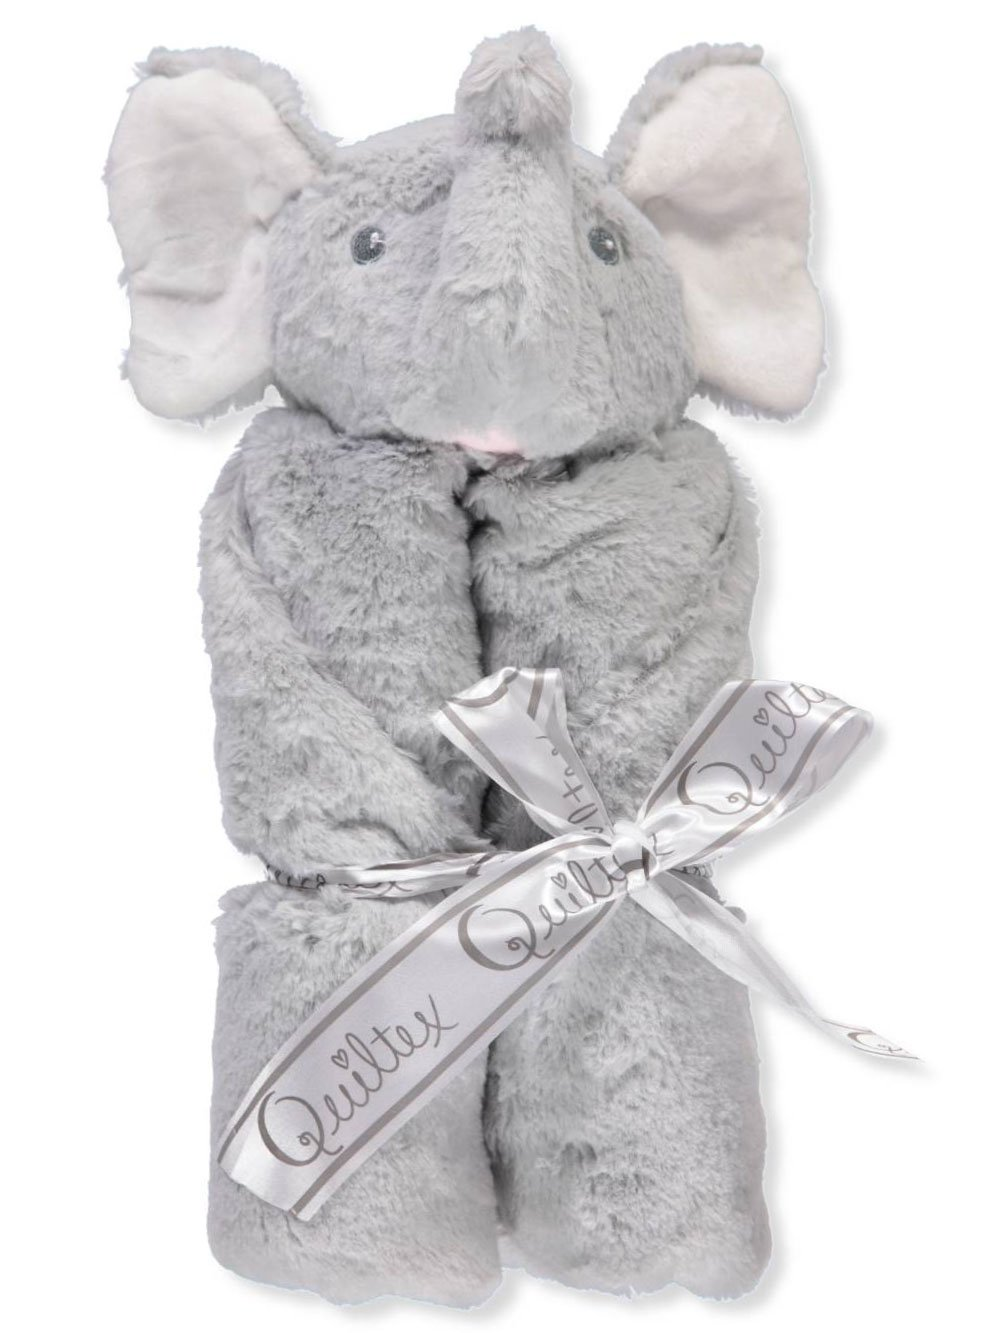 Quiltex Security Blanket - Elephant - gray, one size